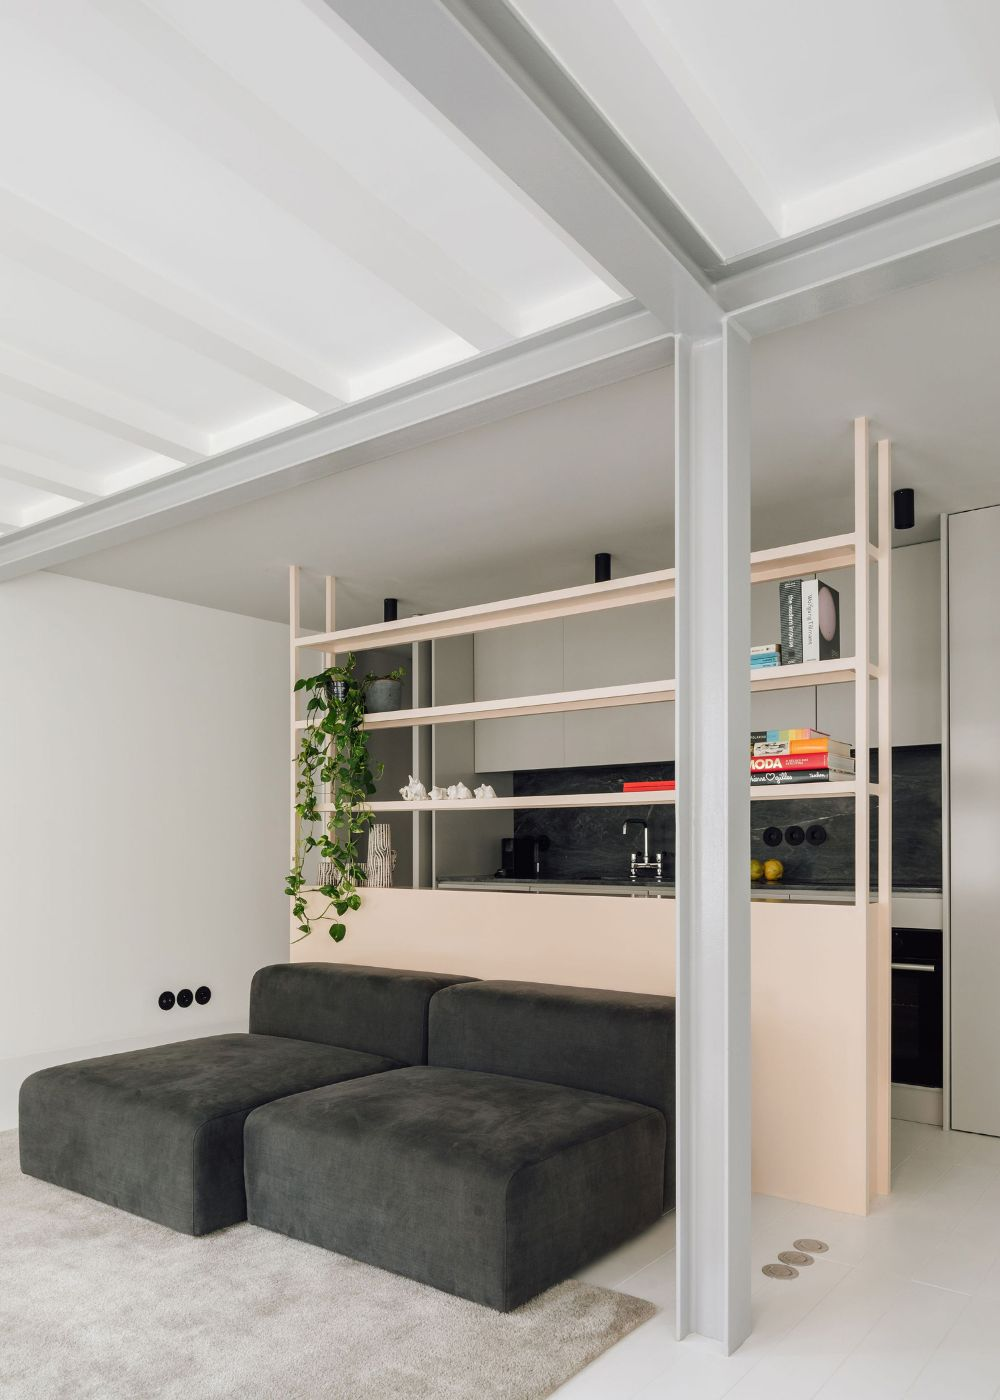 RGM 46 Apartment in Lisbon, Portugal by DC.AD Studio | Yellowtrace